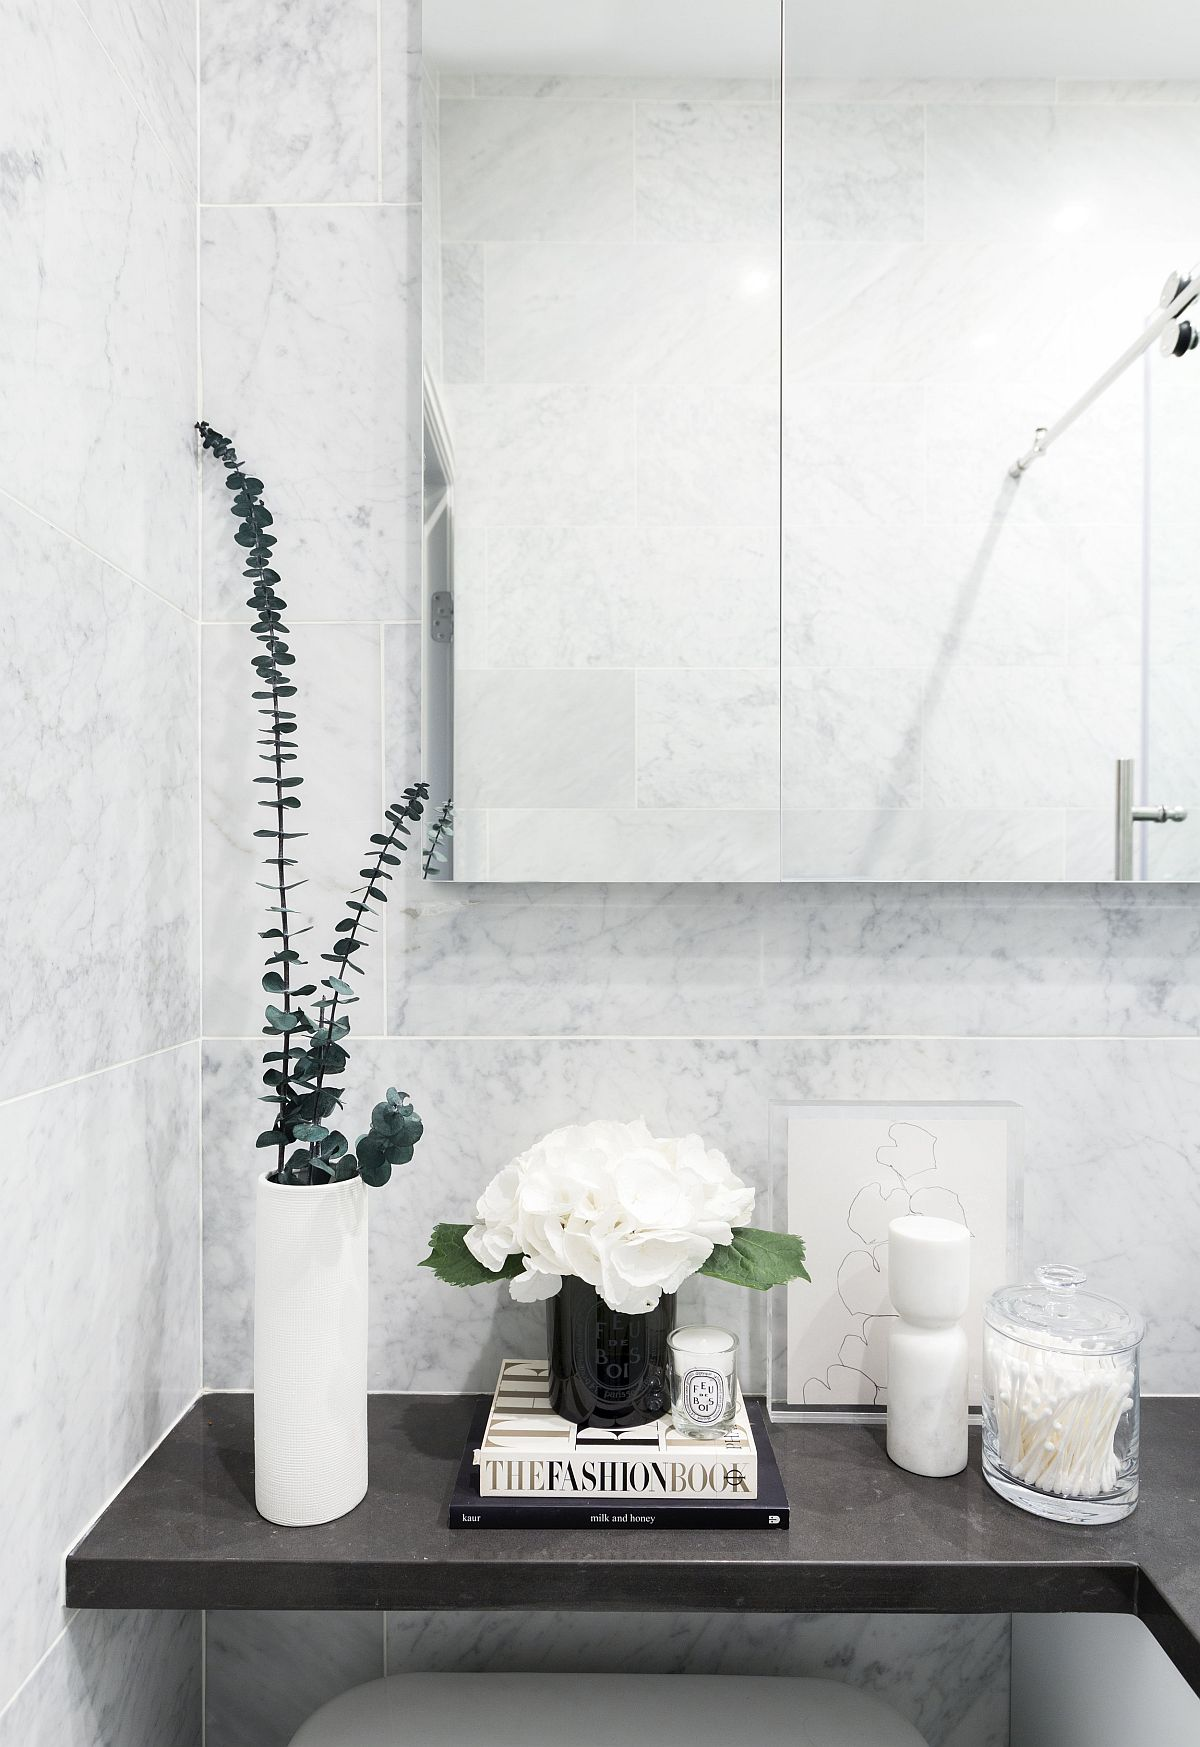 Decorating-the-black-countertop-in-the-bathroom-in-a-simple-and-understated-fashion-38116